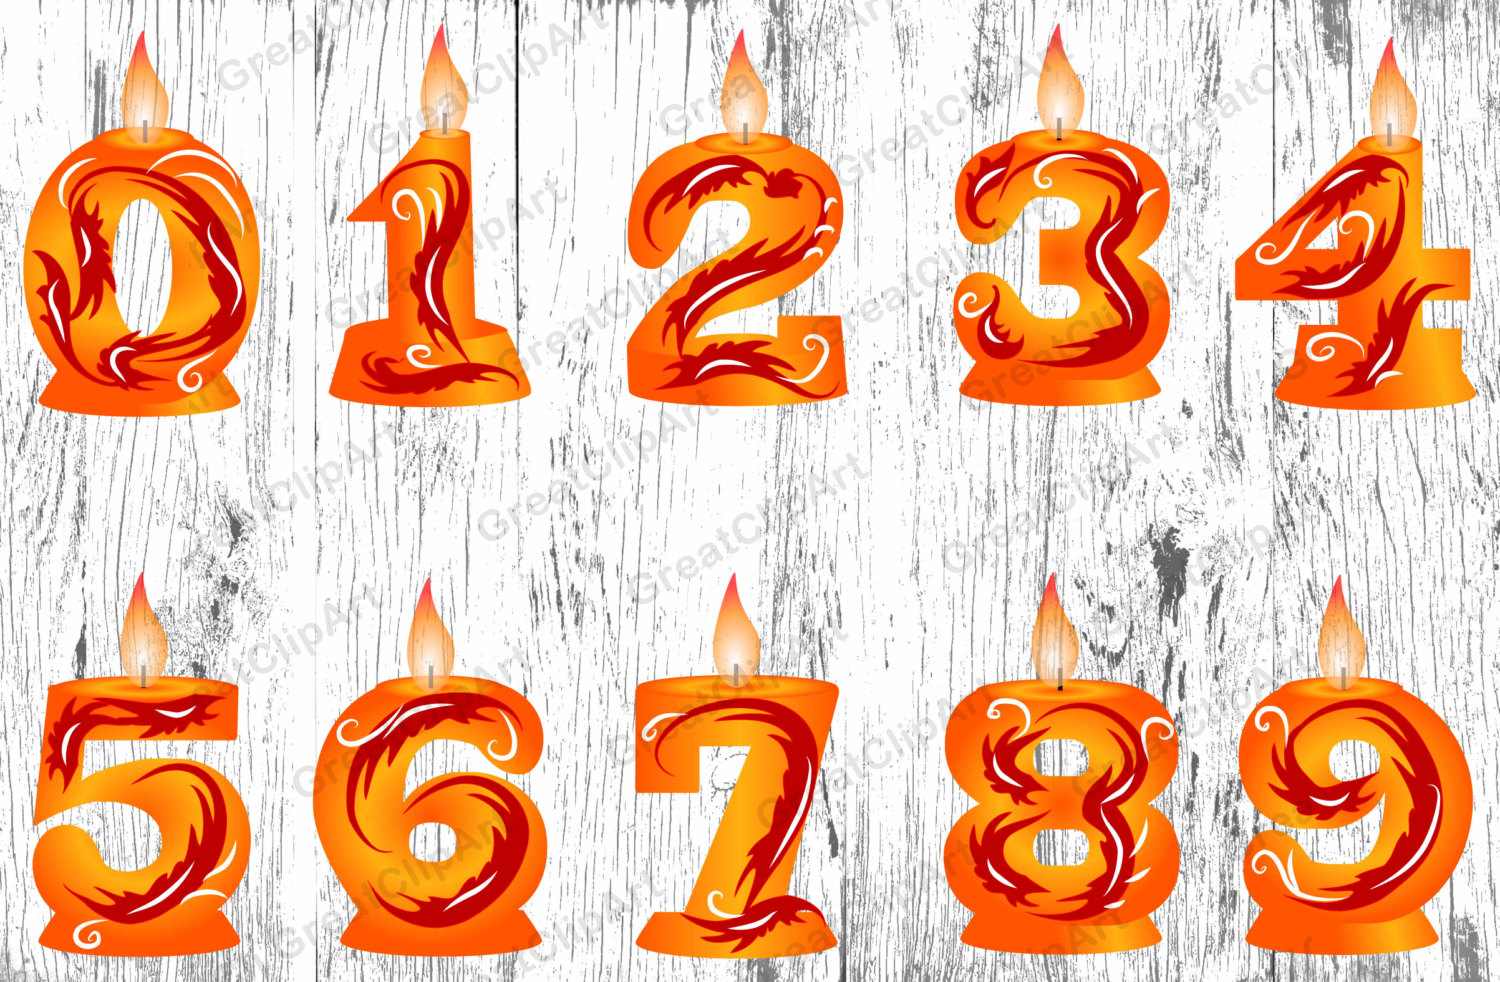 10 Orange Сandle Numbes, Birthday candle, Numbers clipart, orange.